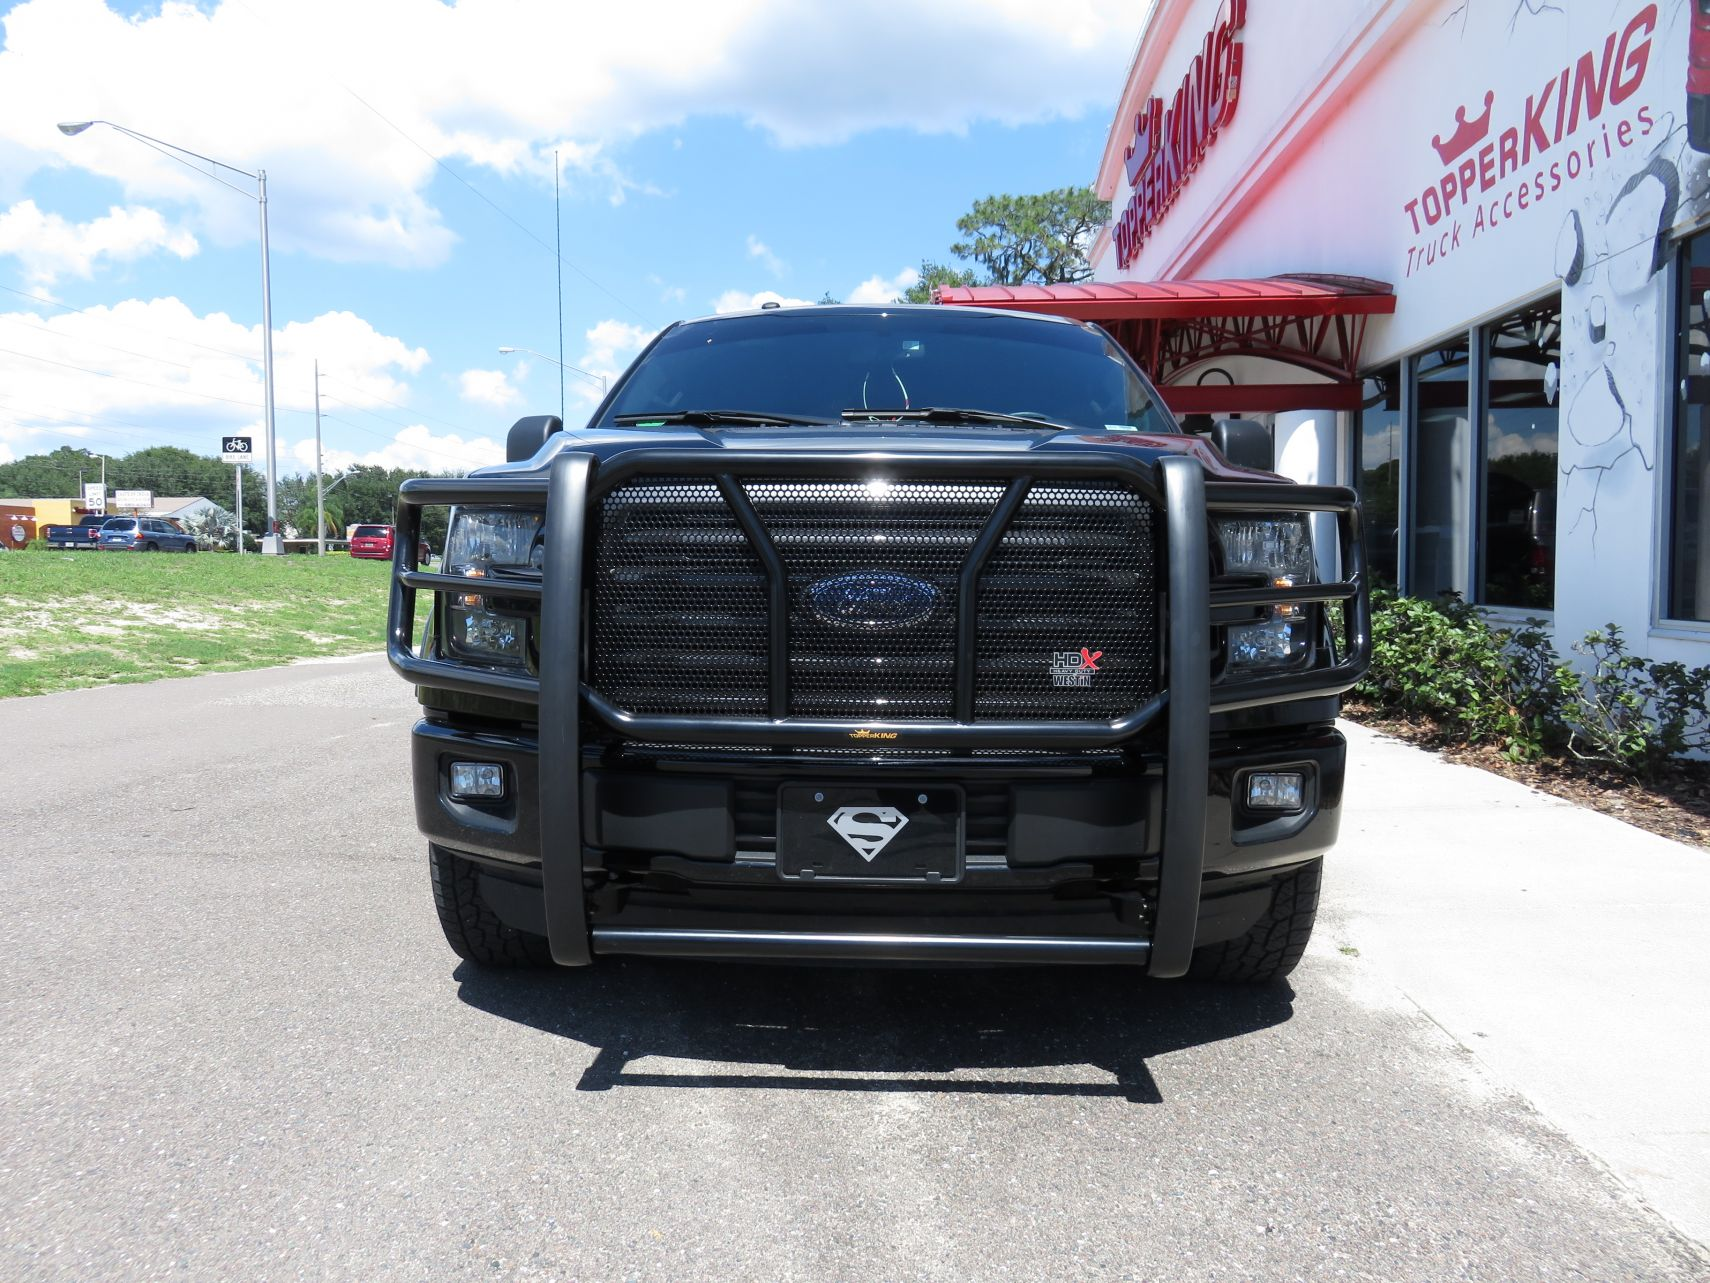 Blacked Out 2017 Ford F150 with Grille Guard - TopperKING ...